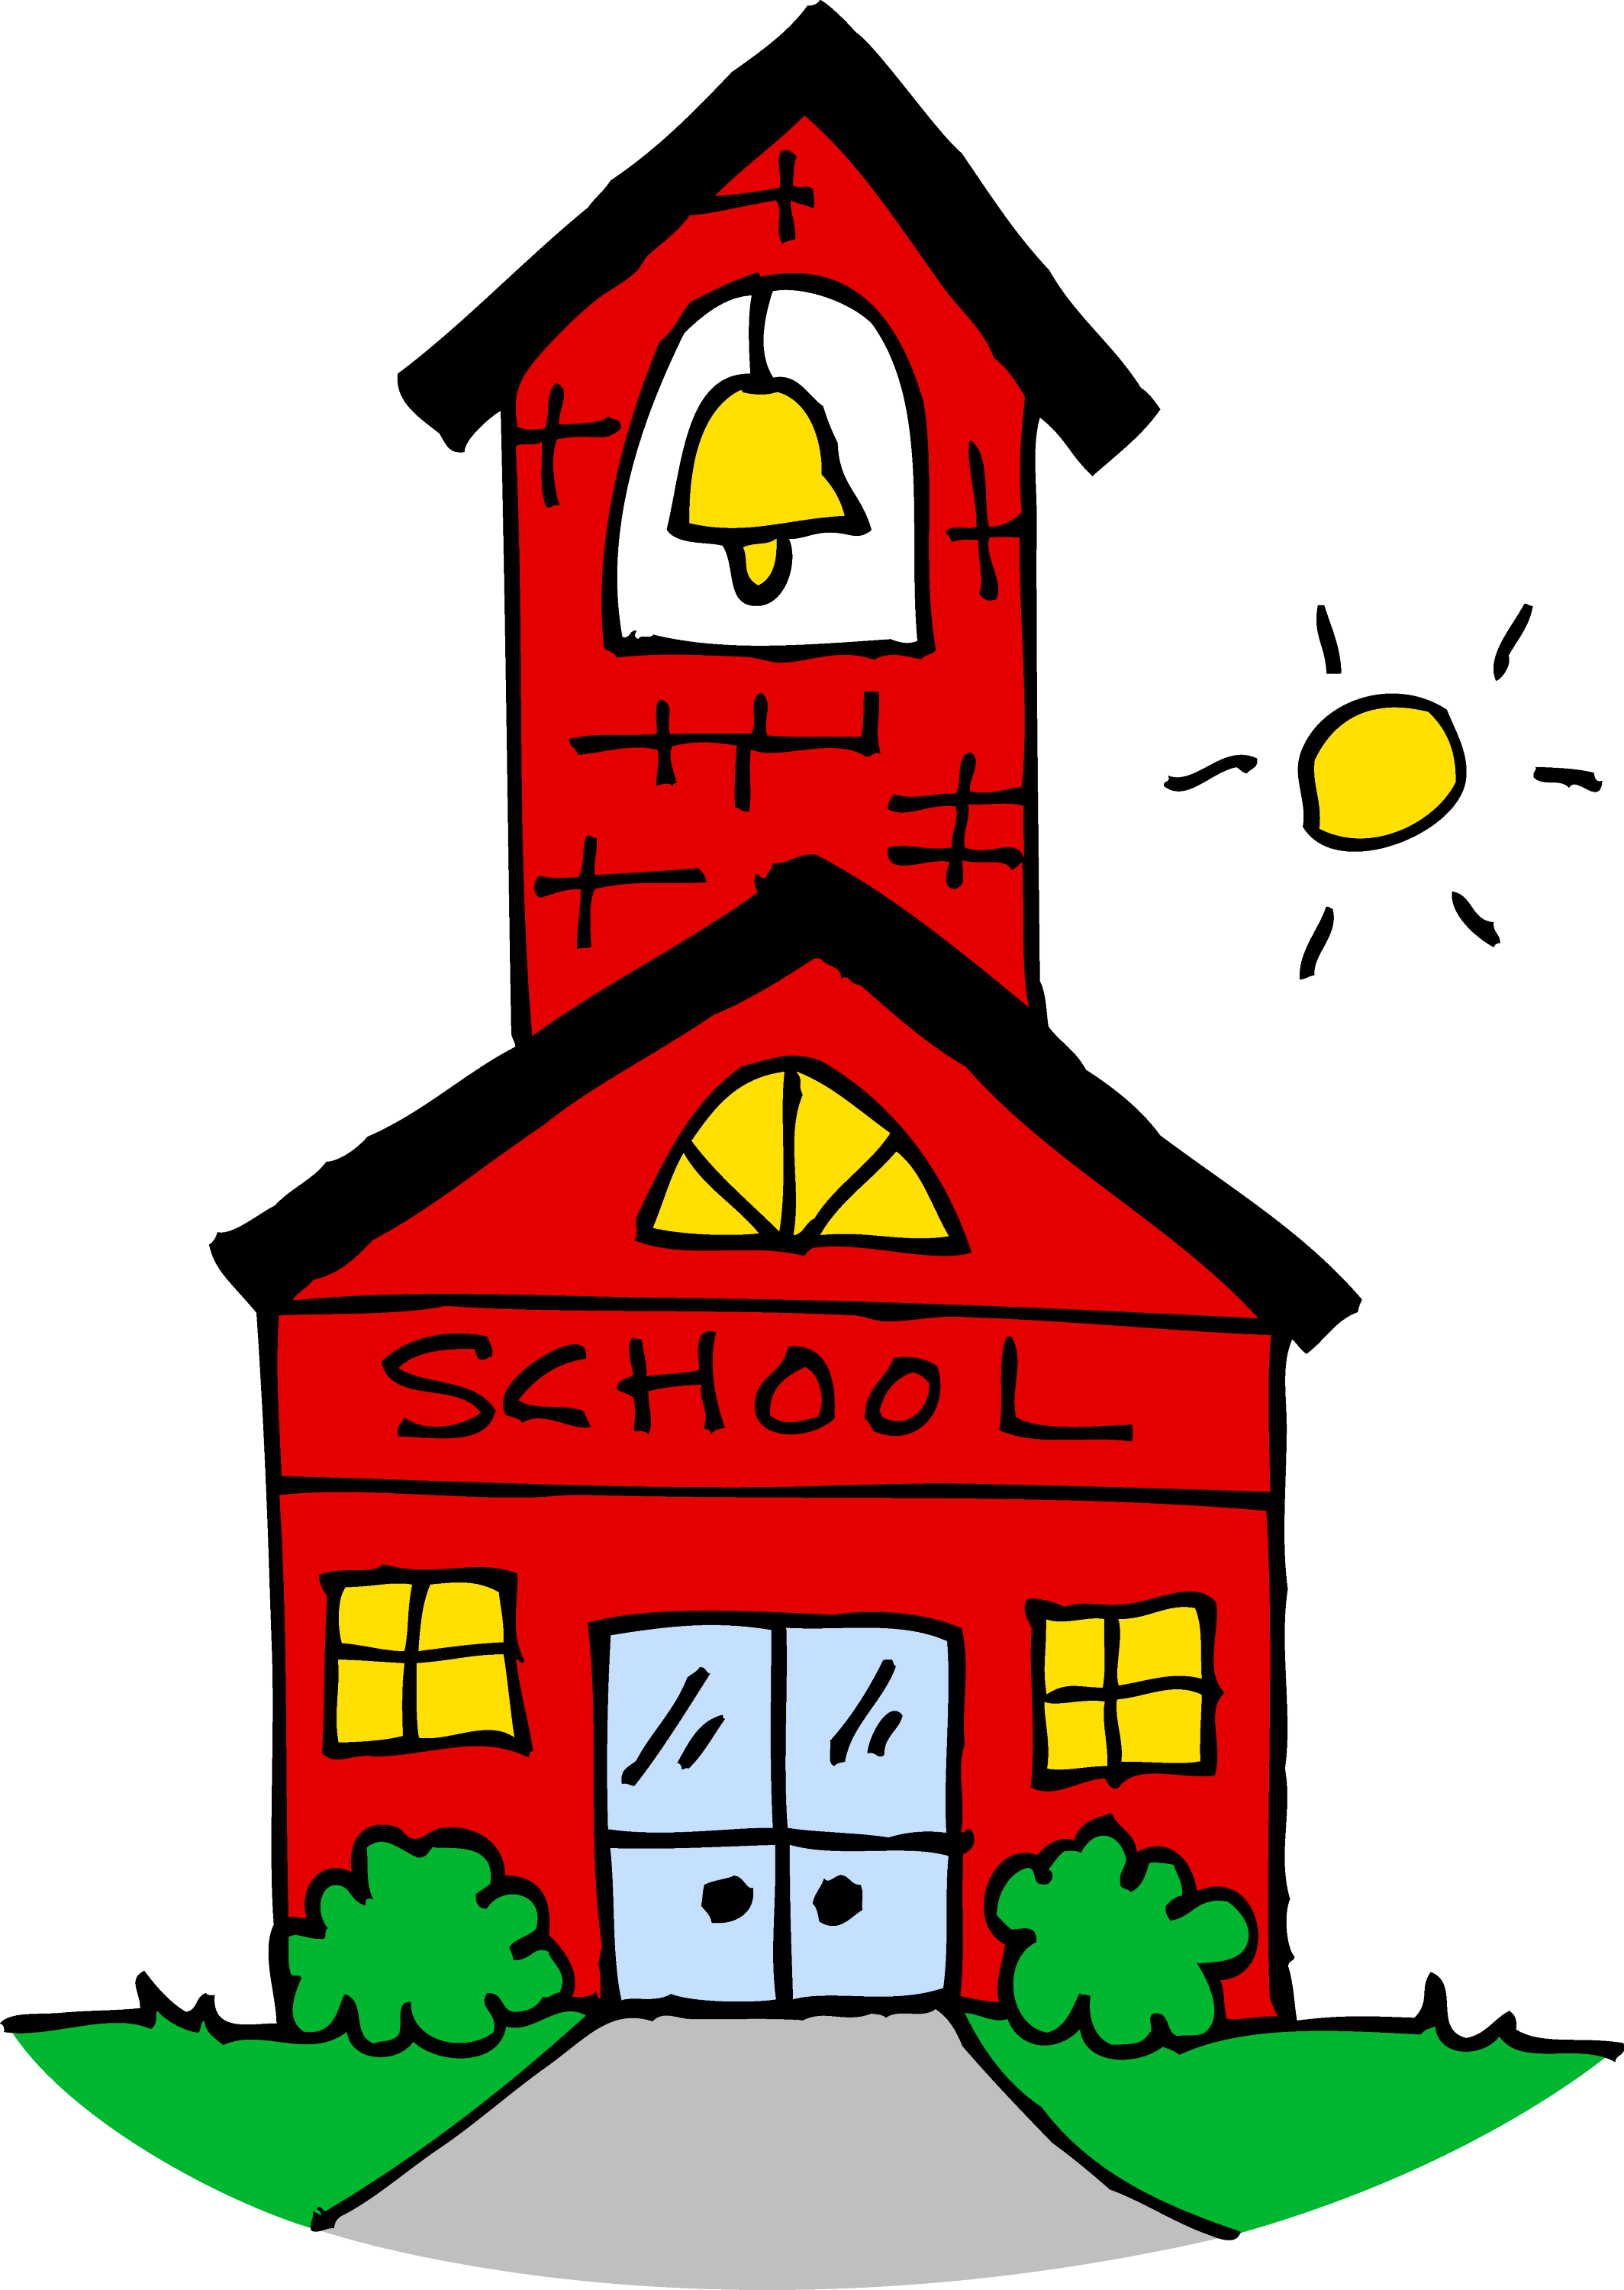 cute school house clipart free clip art rh sweetclipart com house clipart black and white house clipart image